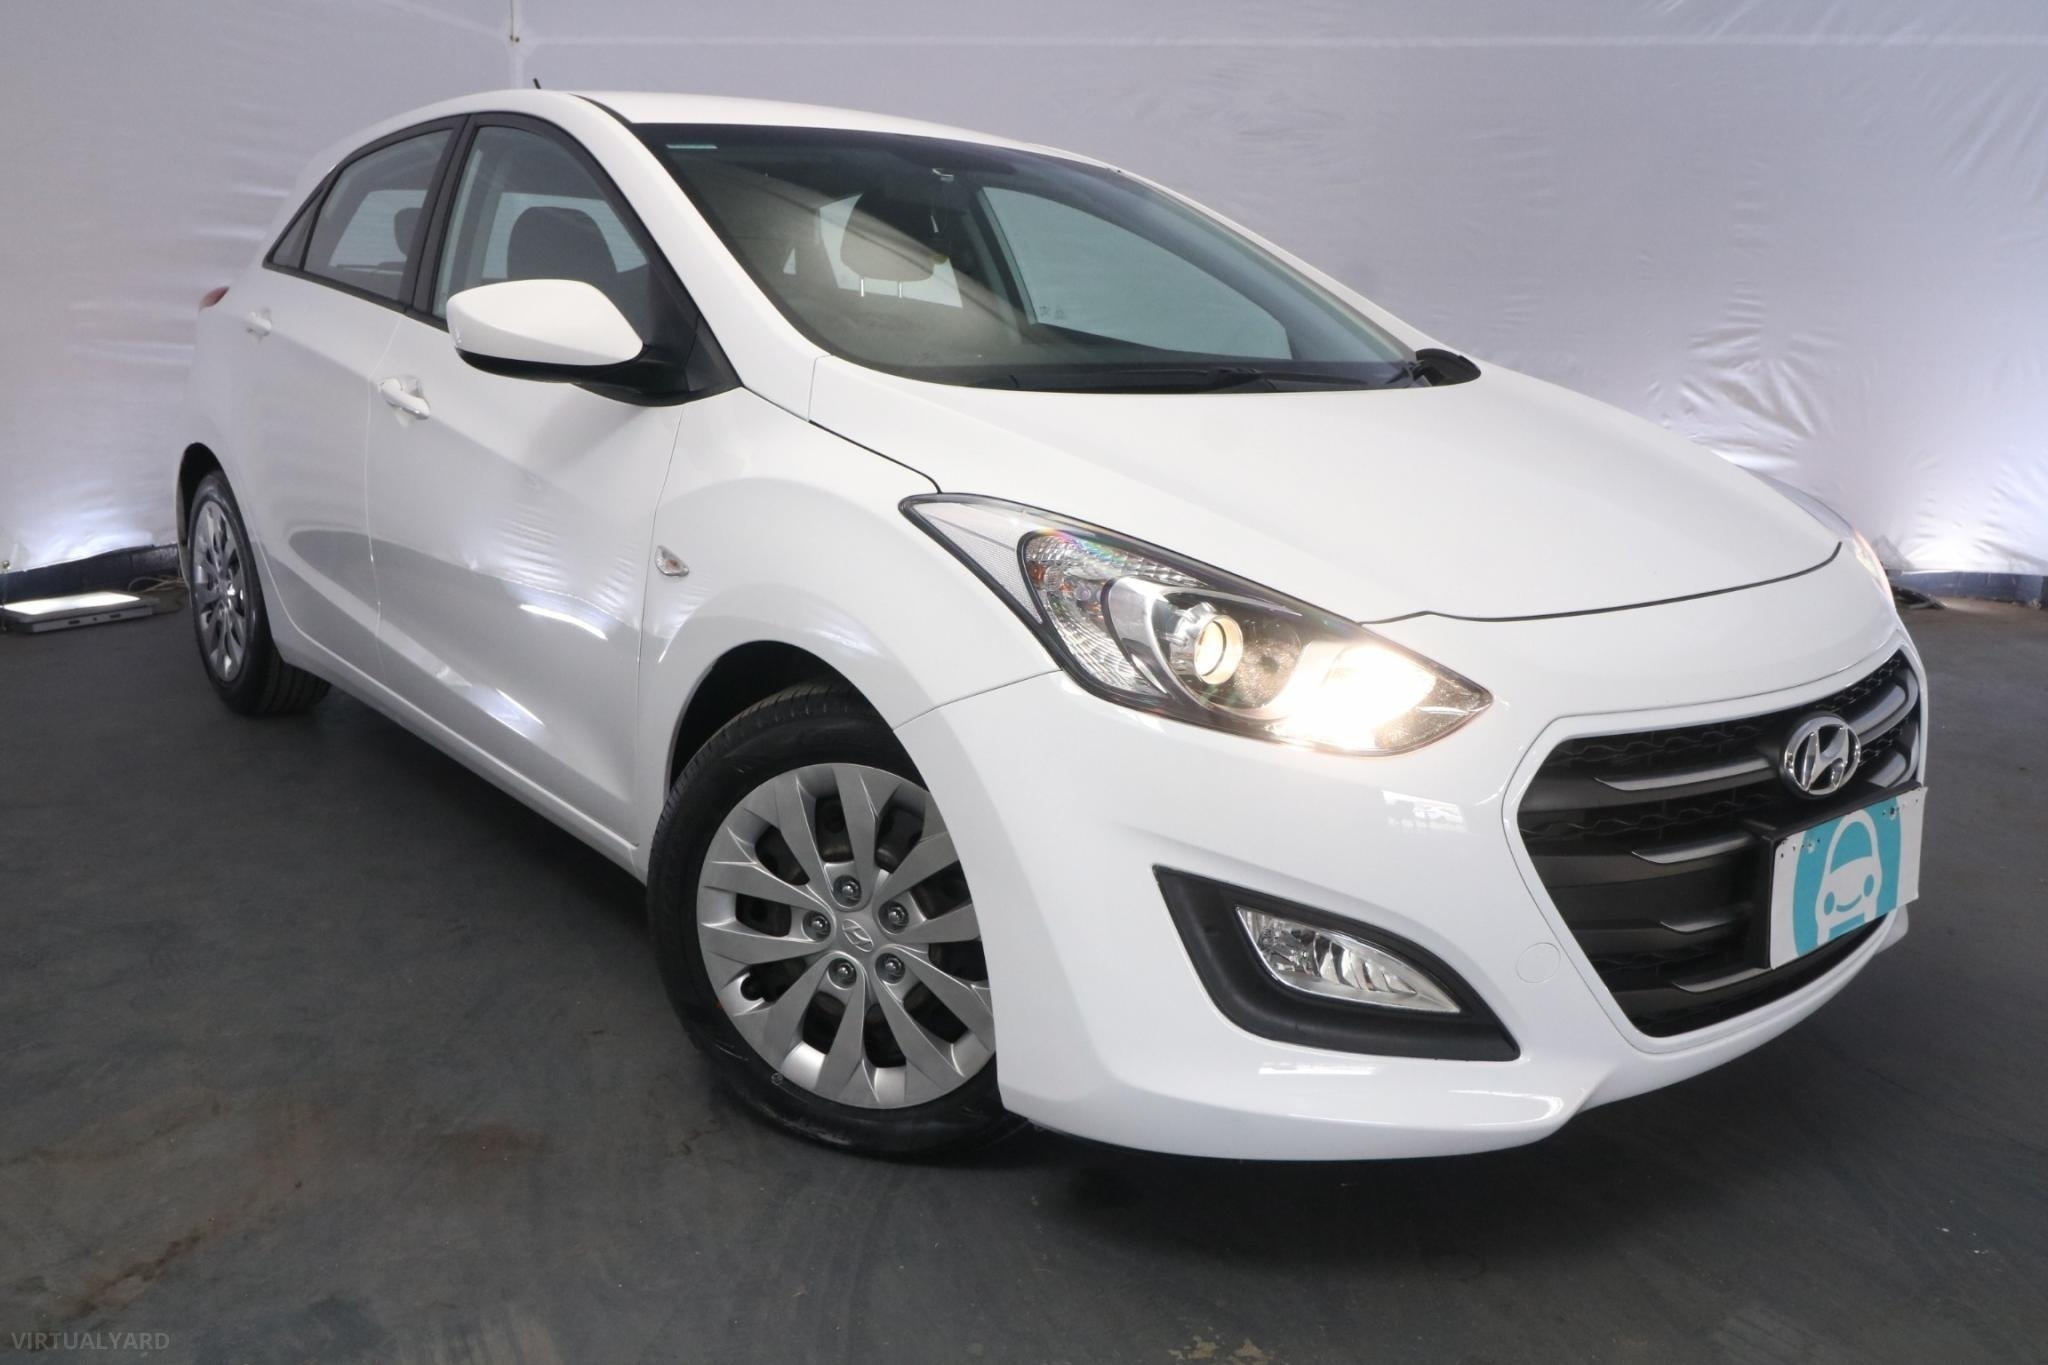 2016 Hyundai i30 ACTIVE GD4 SERIES 2 UPDATE / 6 Speed Automatic / Hatchback / 1.8L / 4 Cylinder / Petrol / 4x2 / 5 door / June release URO16F